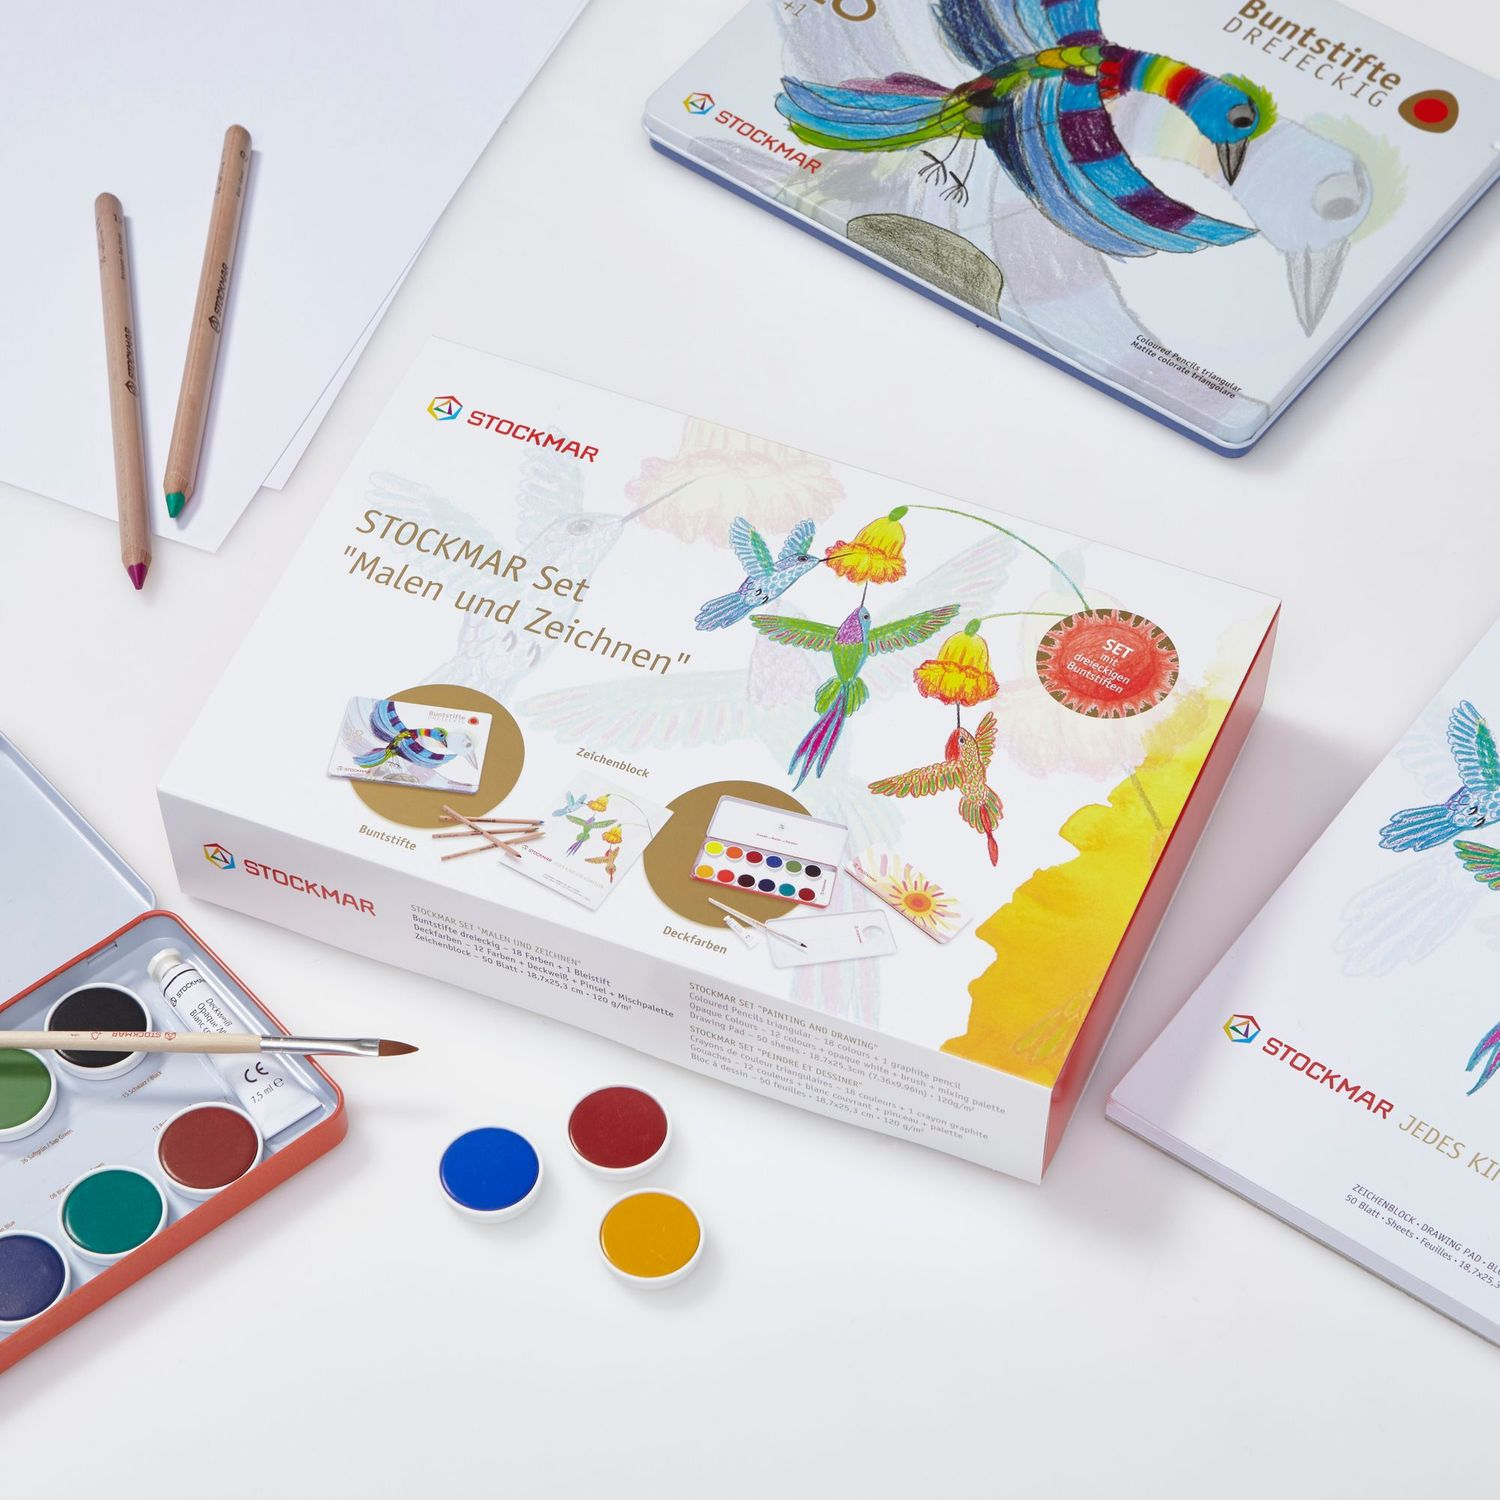 Stockmar Gift Set Painting and Drawing